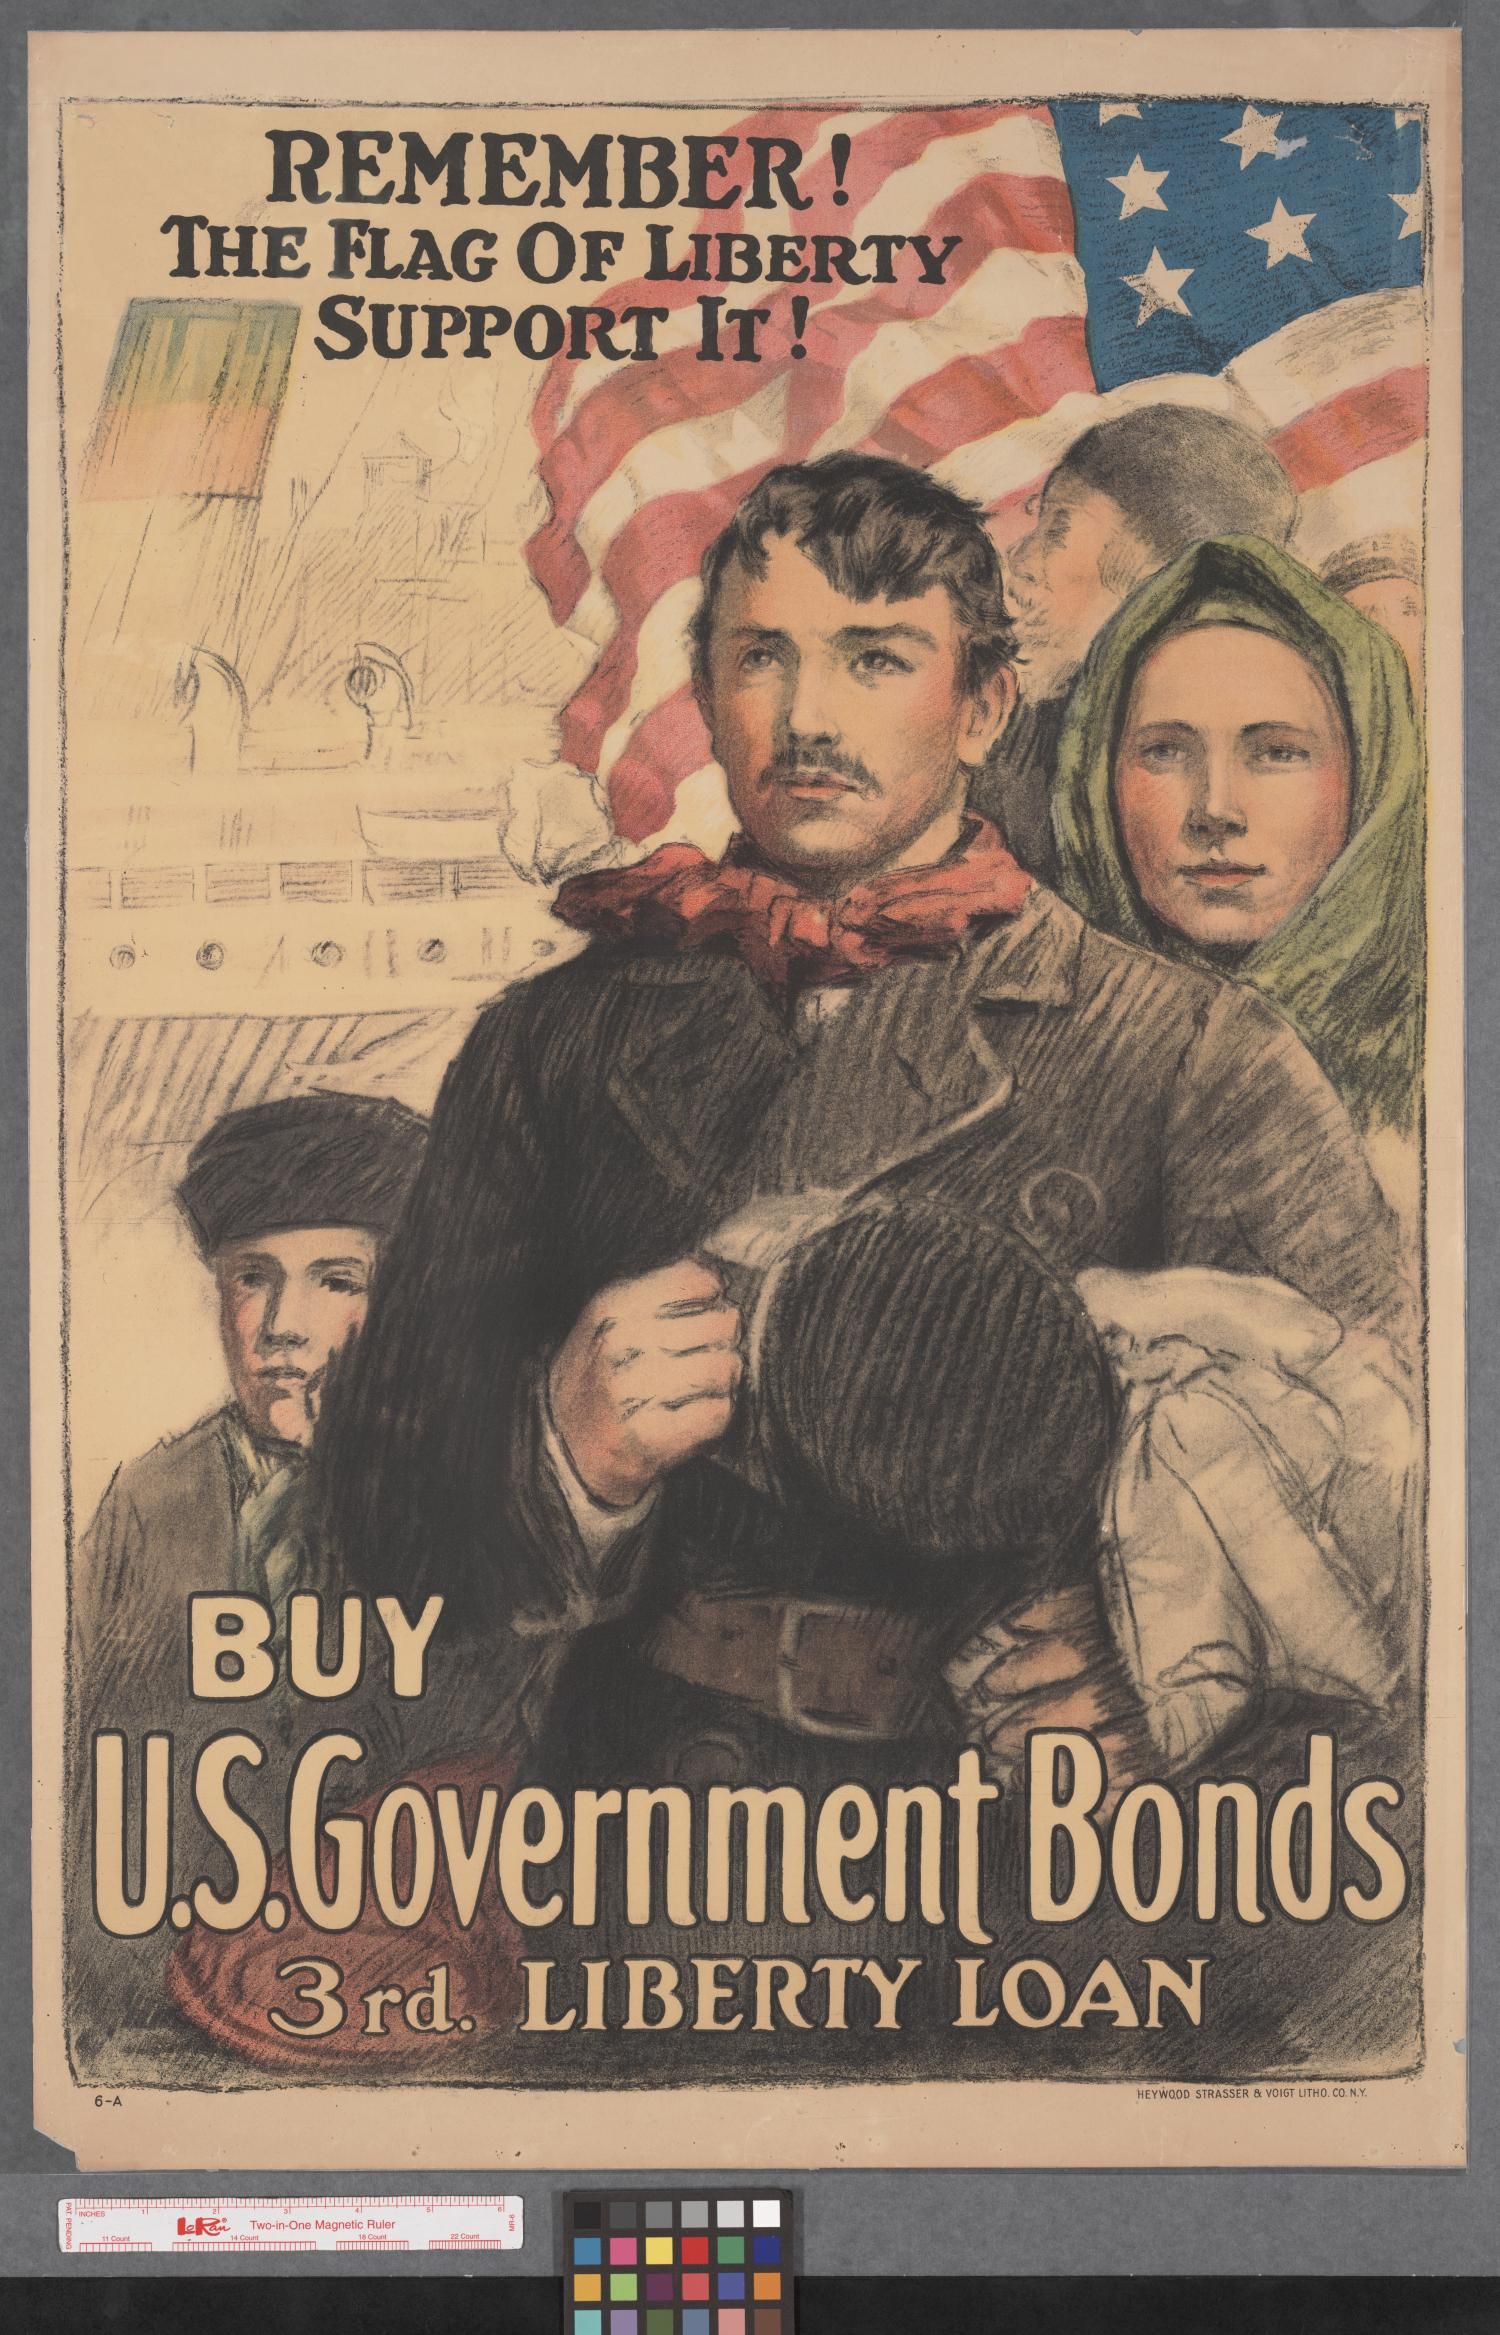 Remember! the flag  of liberty, support it!  : buy U.S. government bonds, 3rd. Liberty Loan.                                                                                                      [Sequence #]: 1 of 1